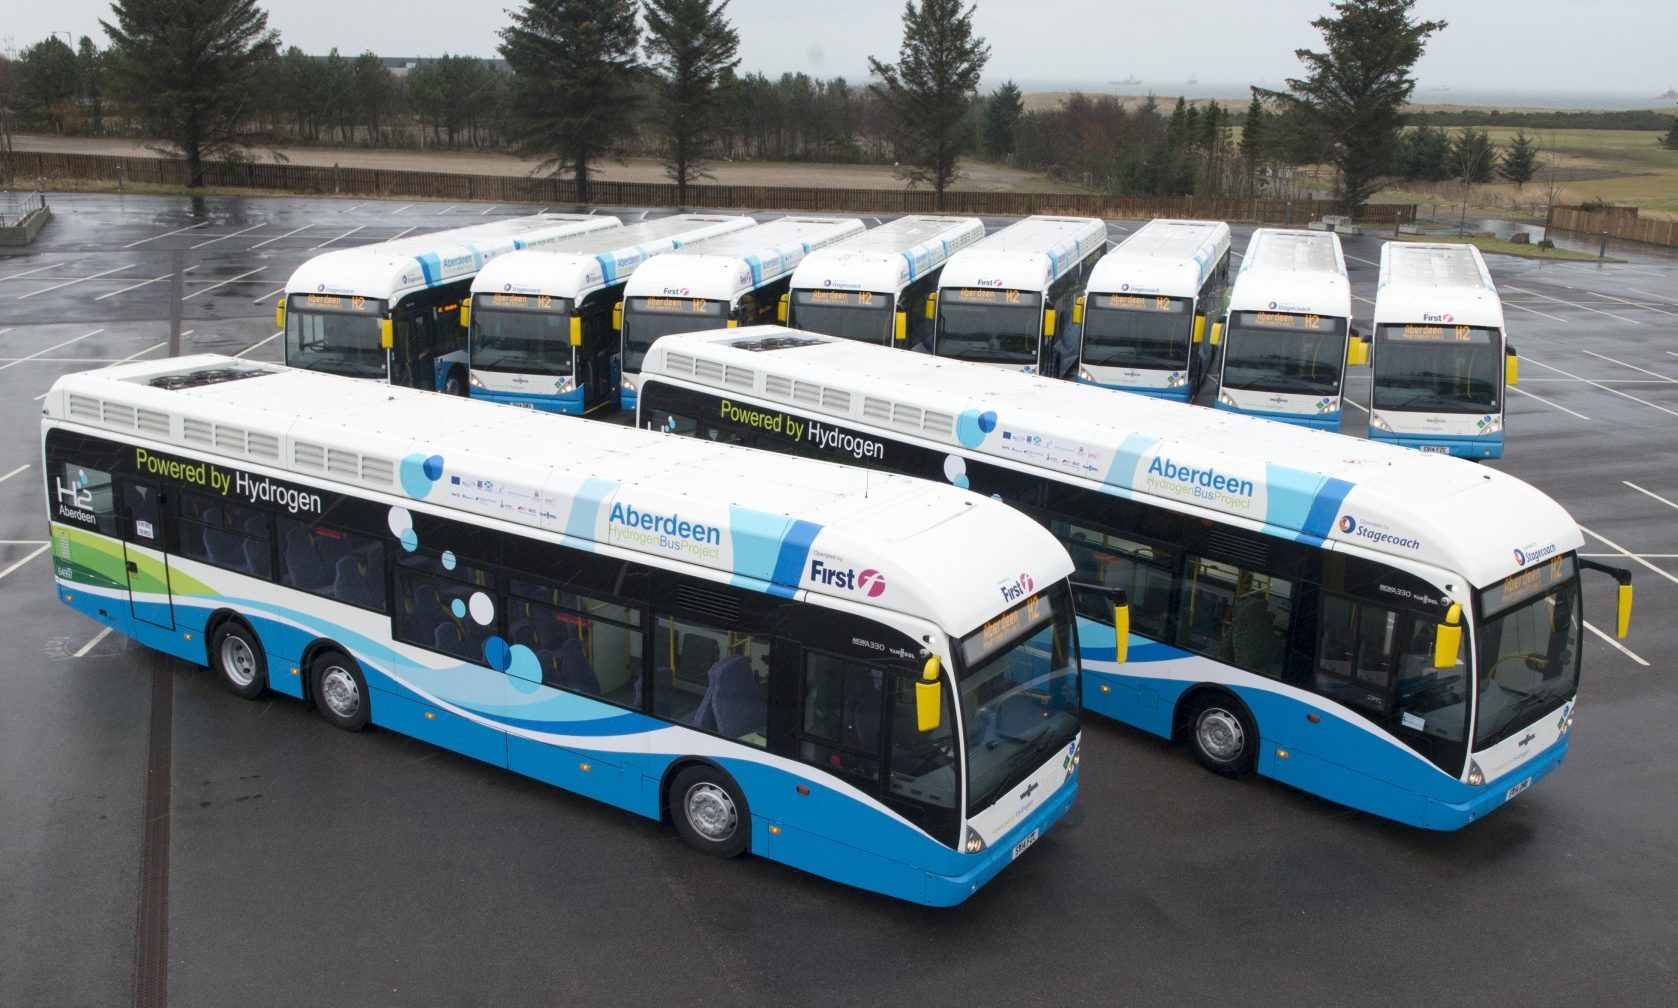 The city's hydrogen buses